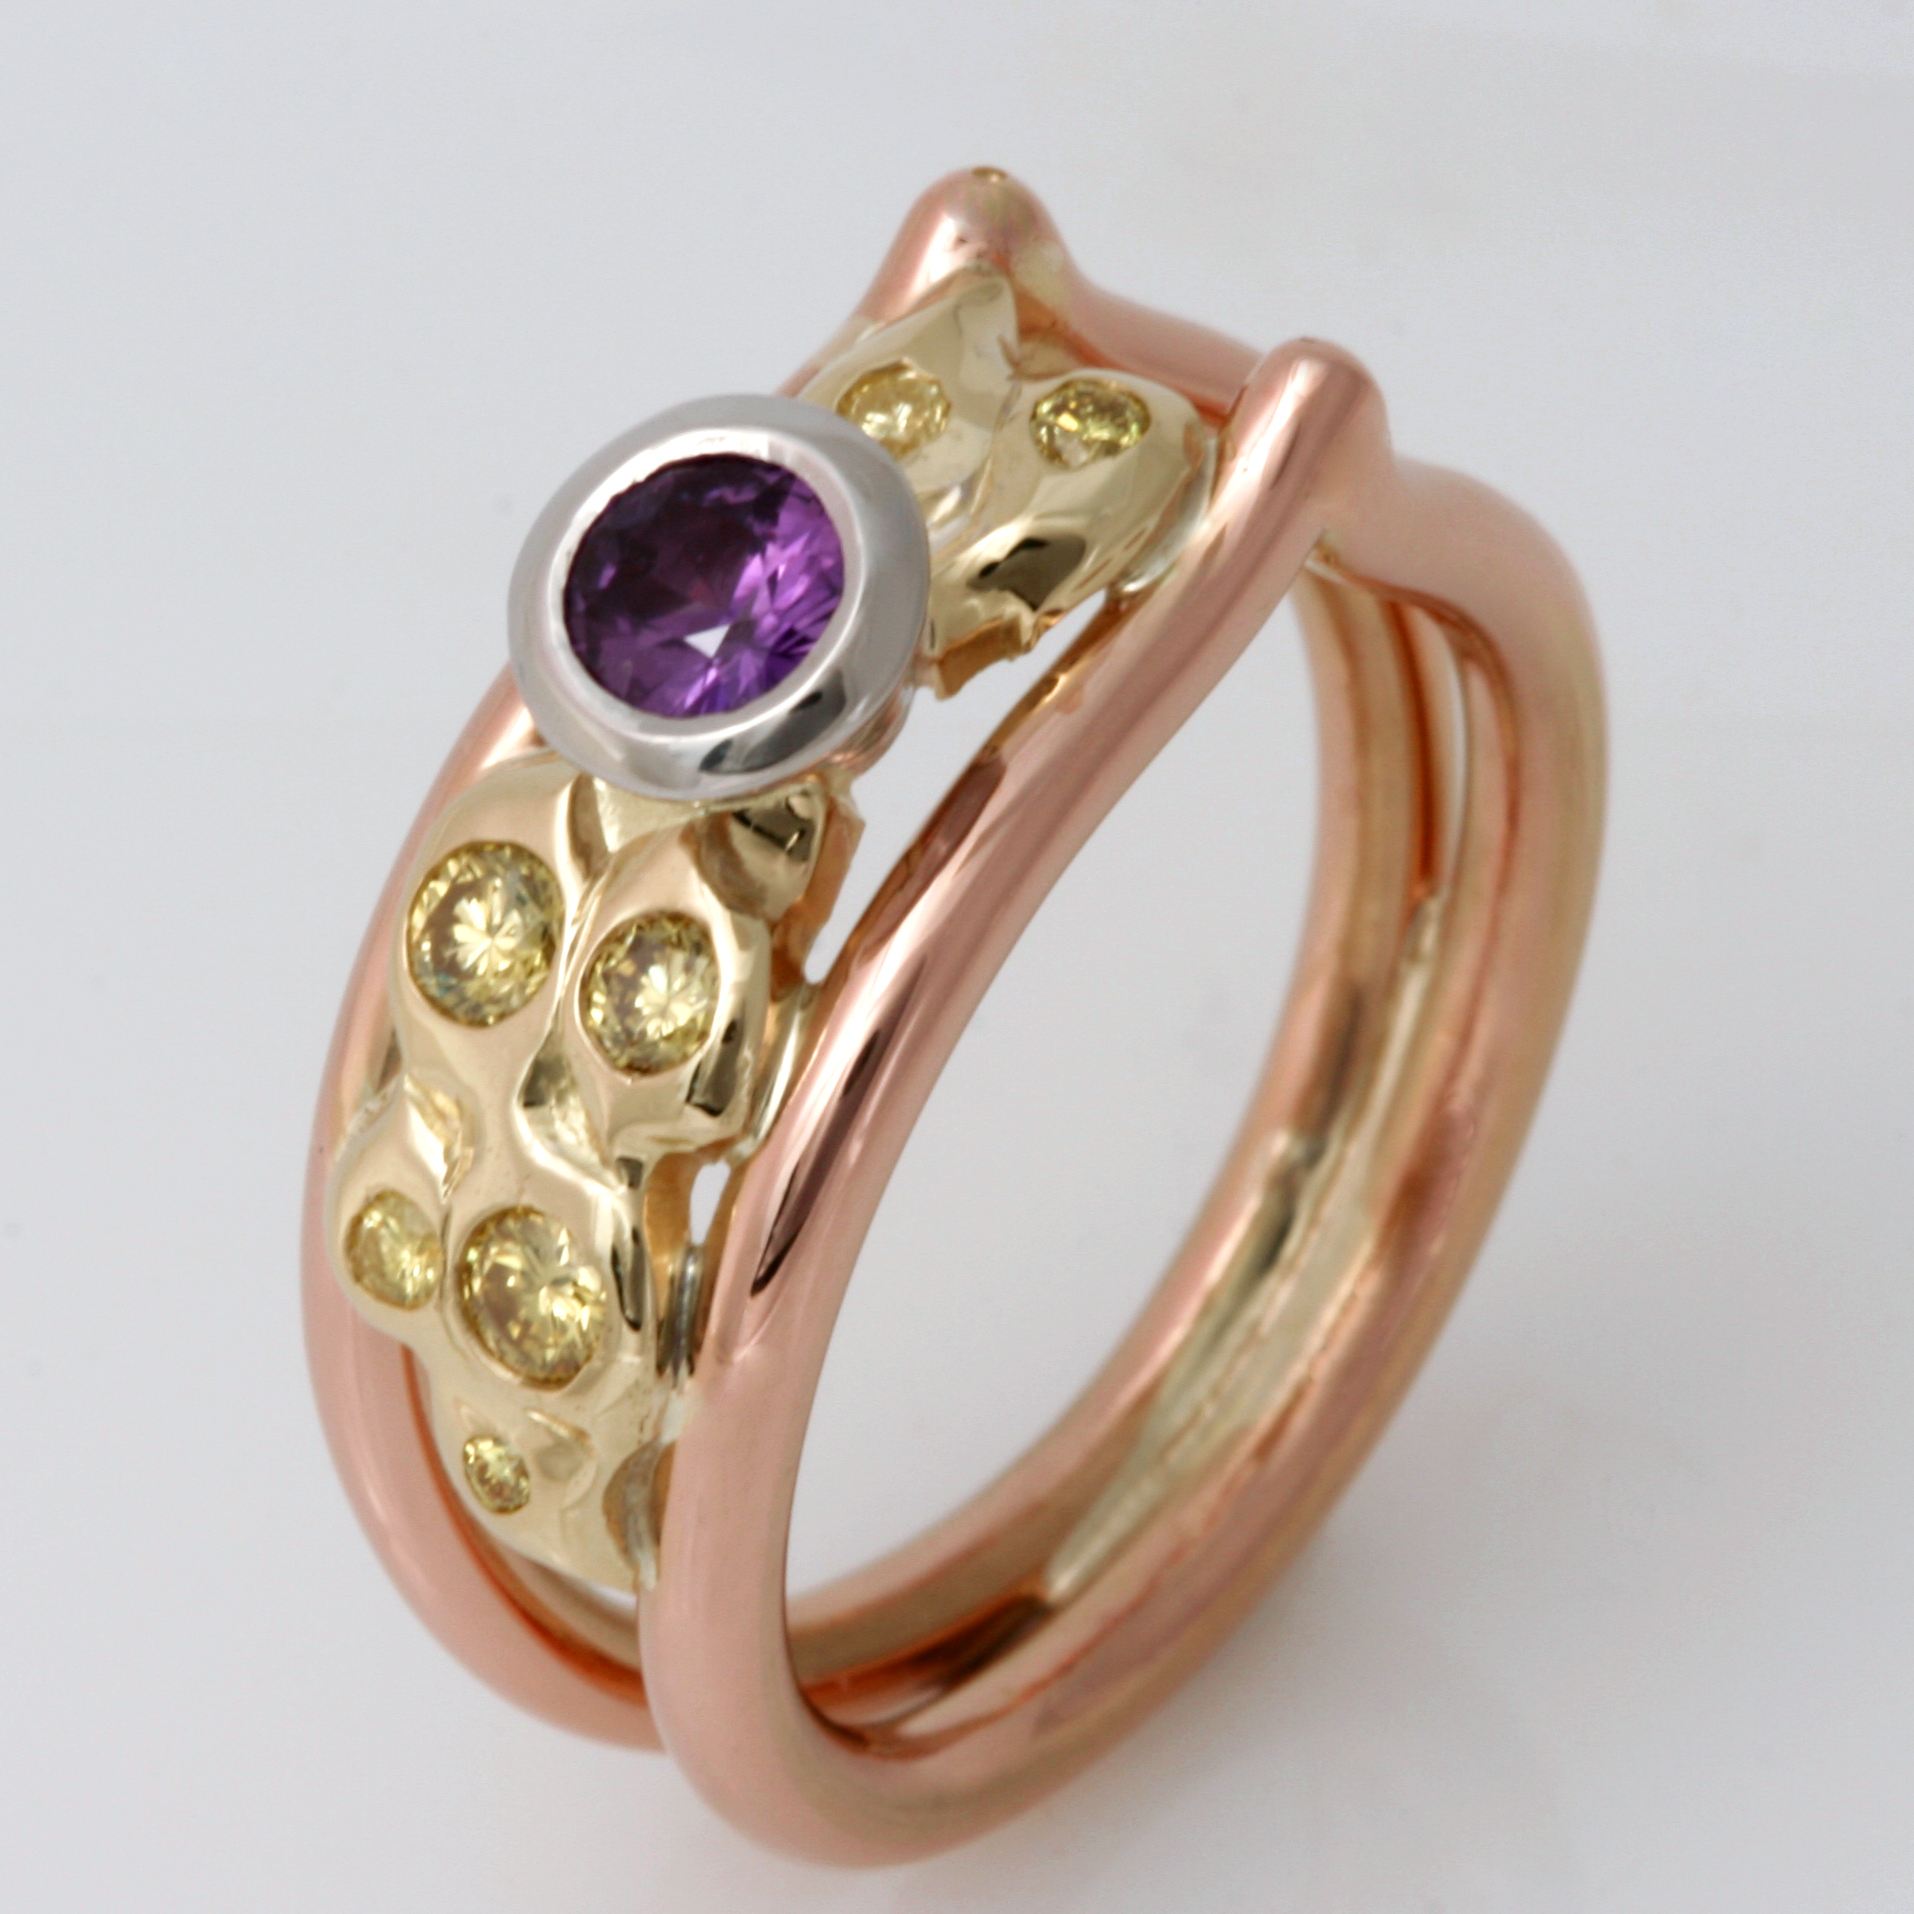 Handmade ladies palladium, 18ct green gold and 18ct rose gold ring featuring a purple sapphire and yellow diamonds